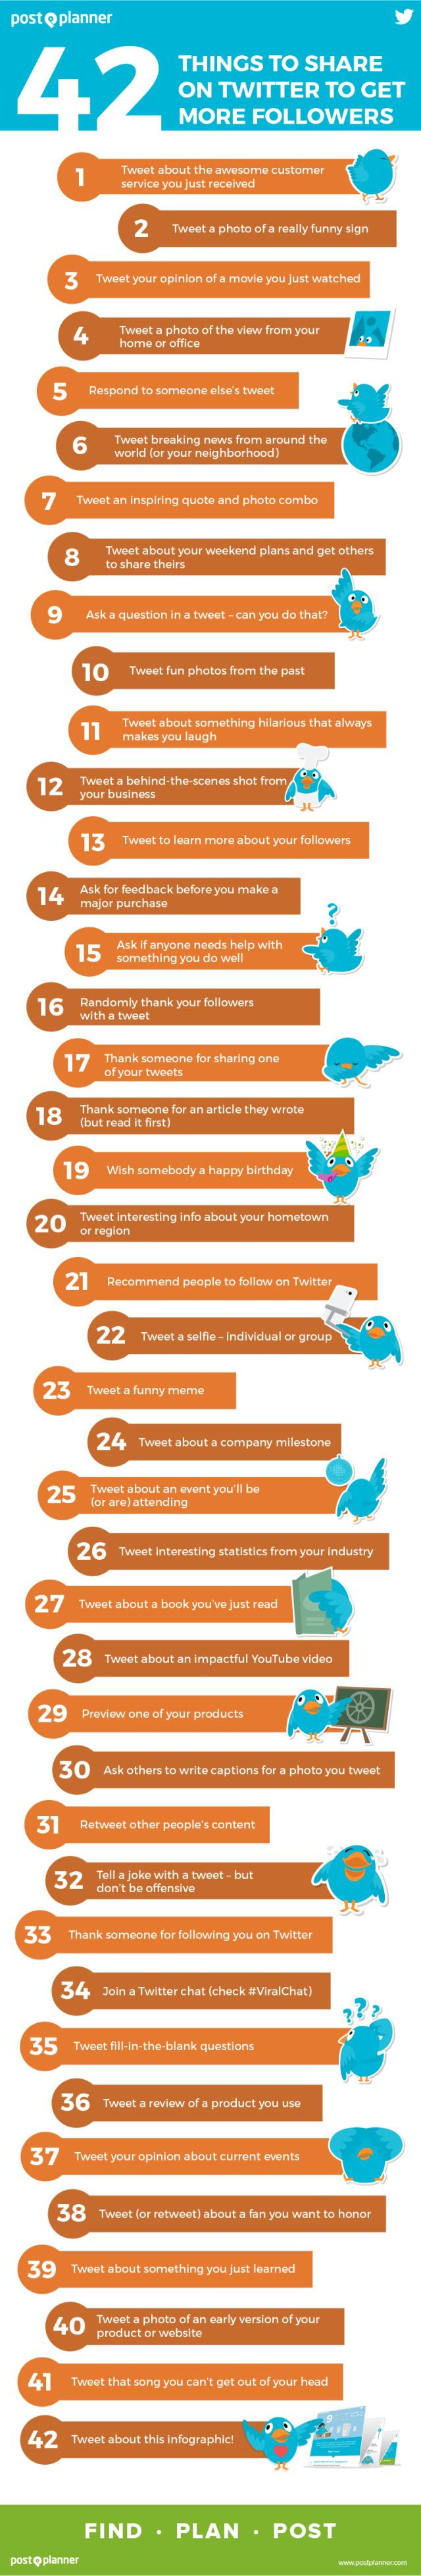 42 Things to Share on Twitter to Get More Valuable Followers #Infographic  #RePin by AT Social Media Marketing - Pinterest Marketing Specialists ATSocialMedia.co.uk